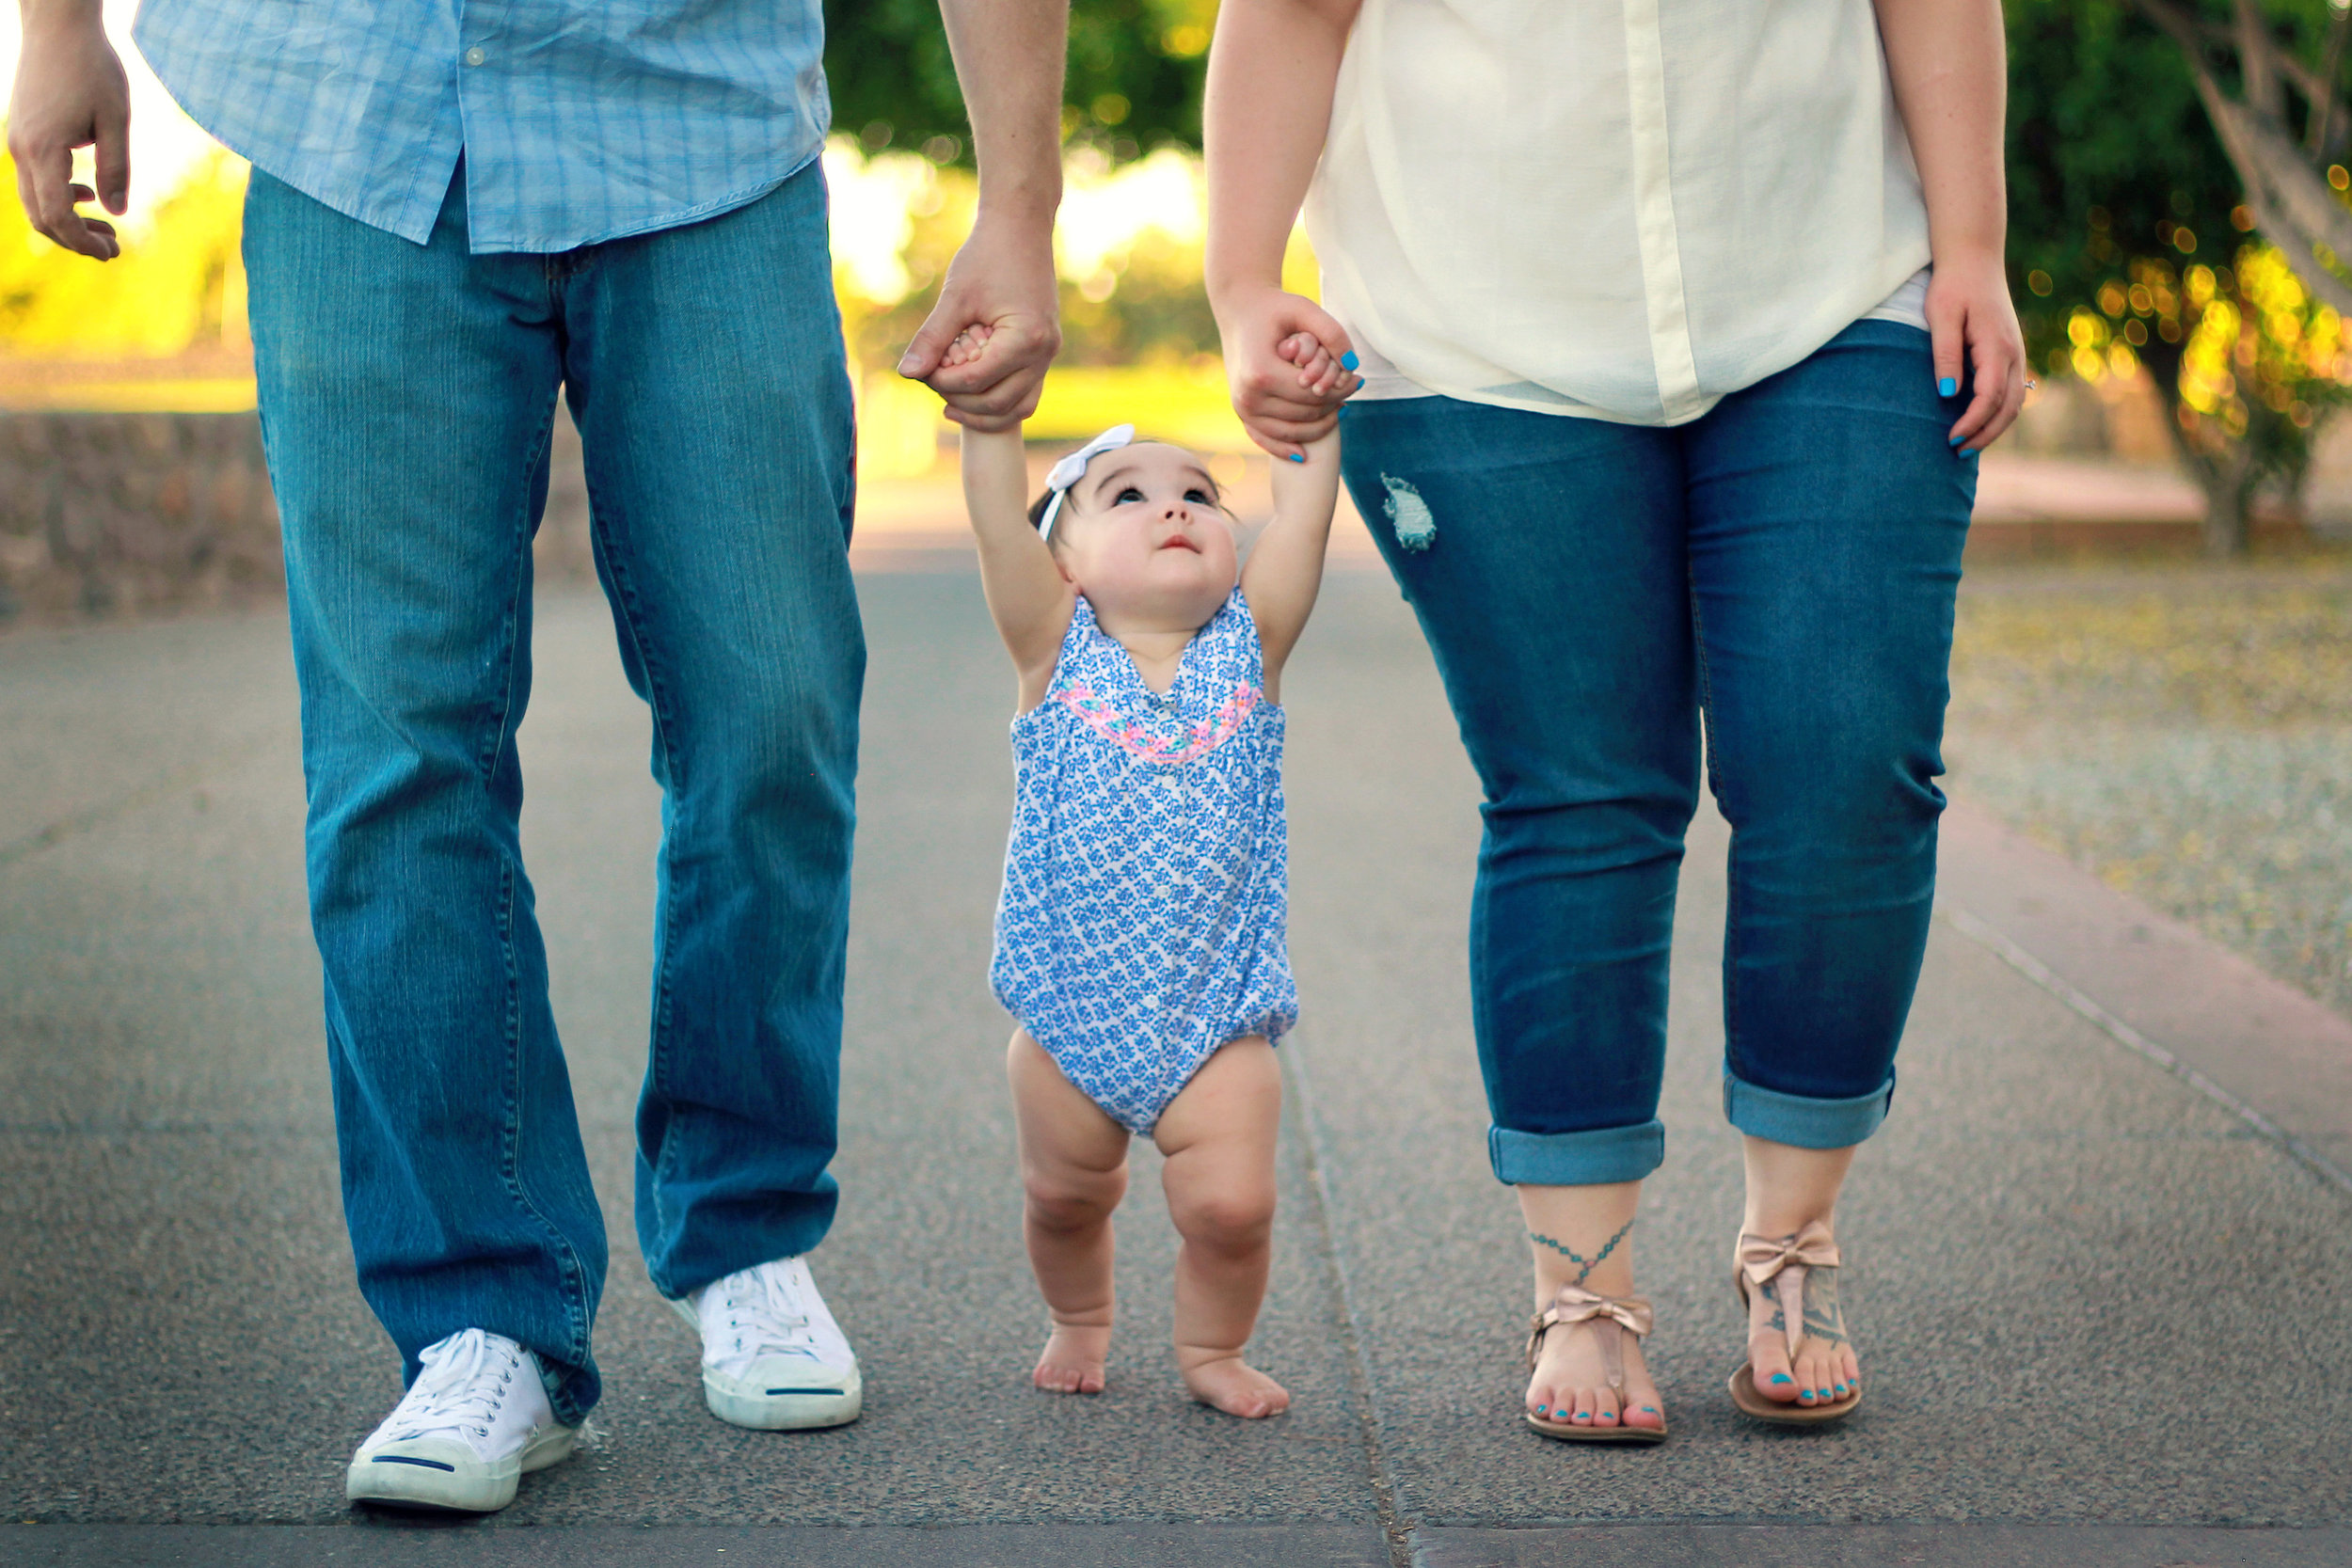 Parents helping baby walk as she gazes up at them.